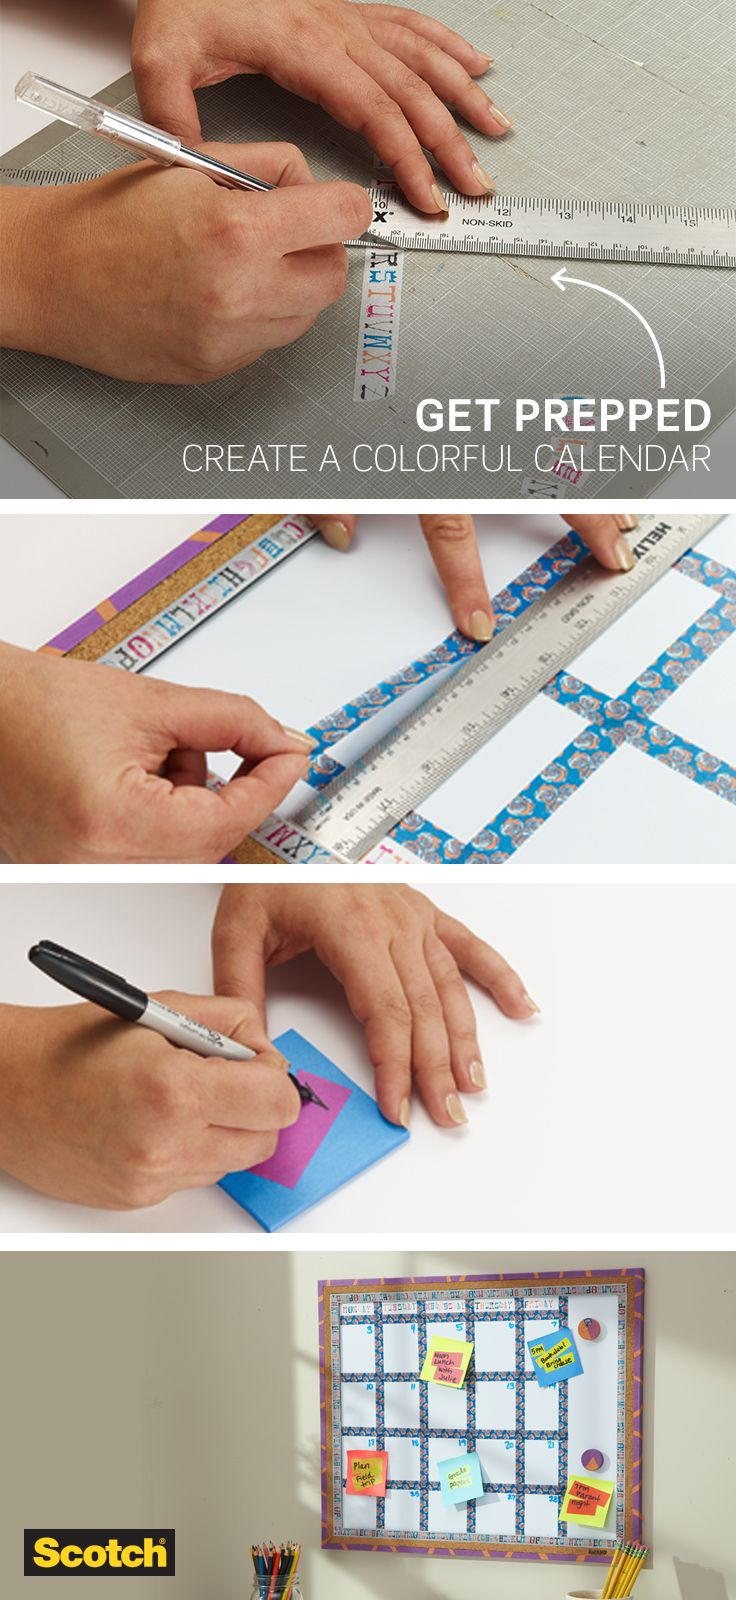 Have a busy schedule? Create an eye-catching calendar with this Scotch Expressions washi tape craft. It's an easy DIY idea sure to keep your tasks on plan.